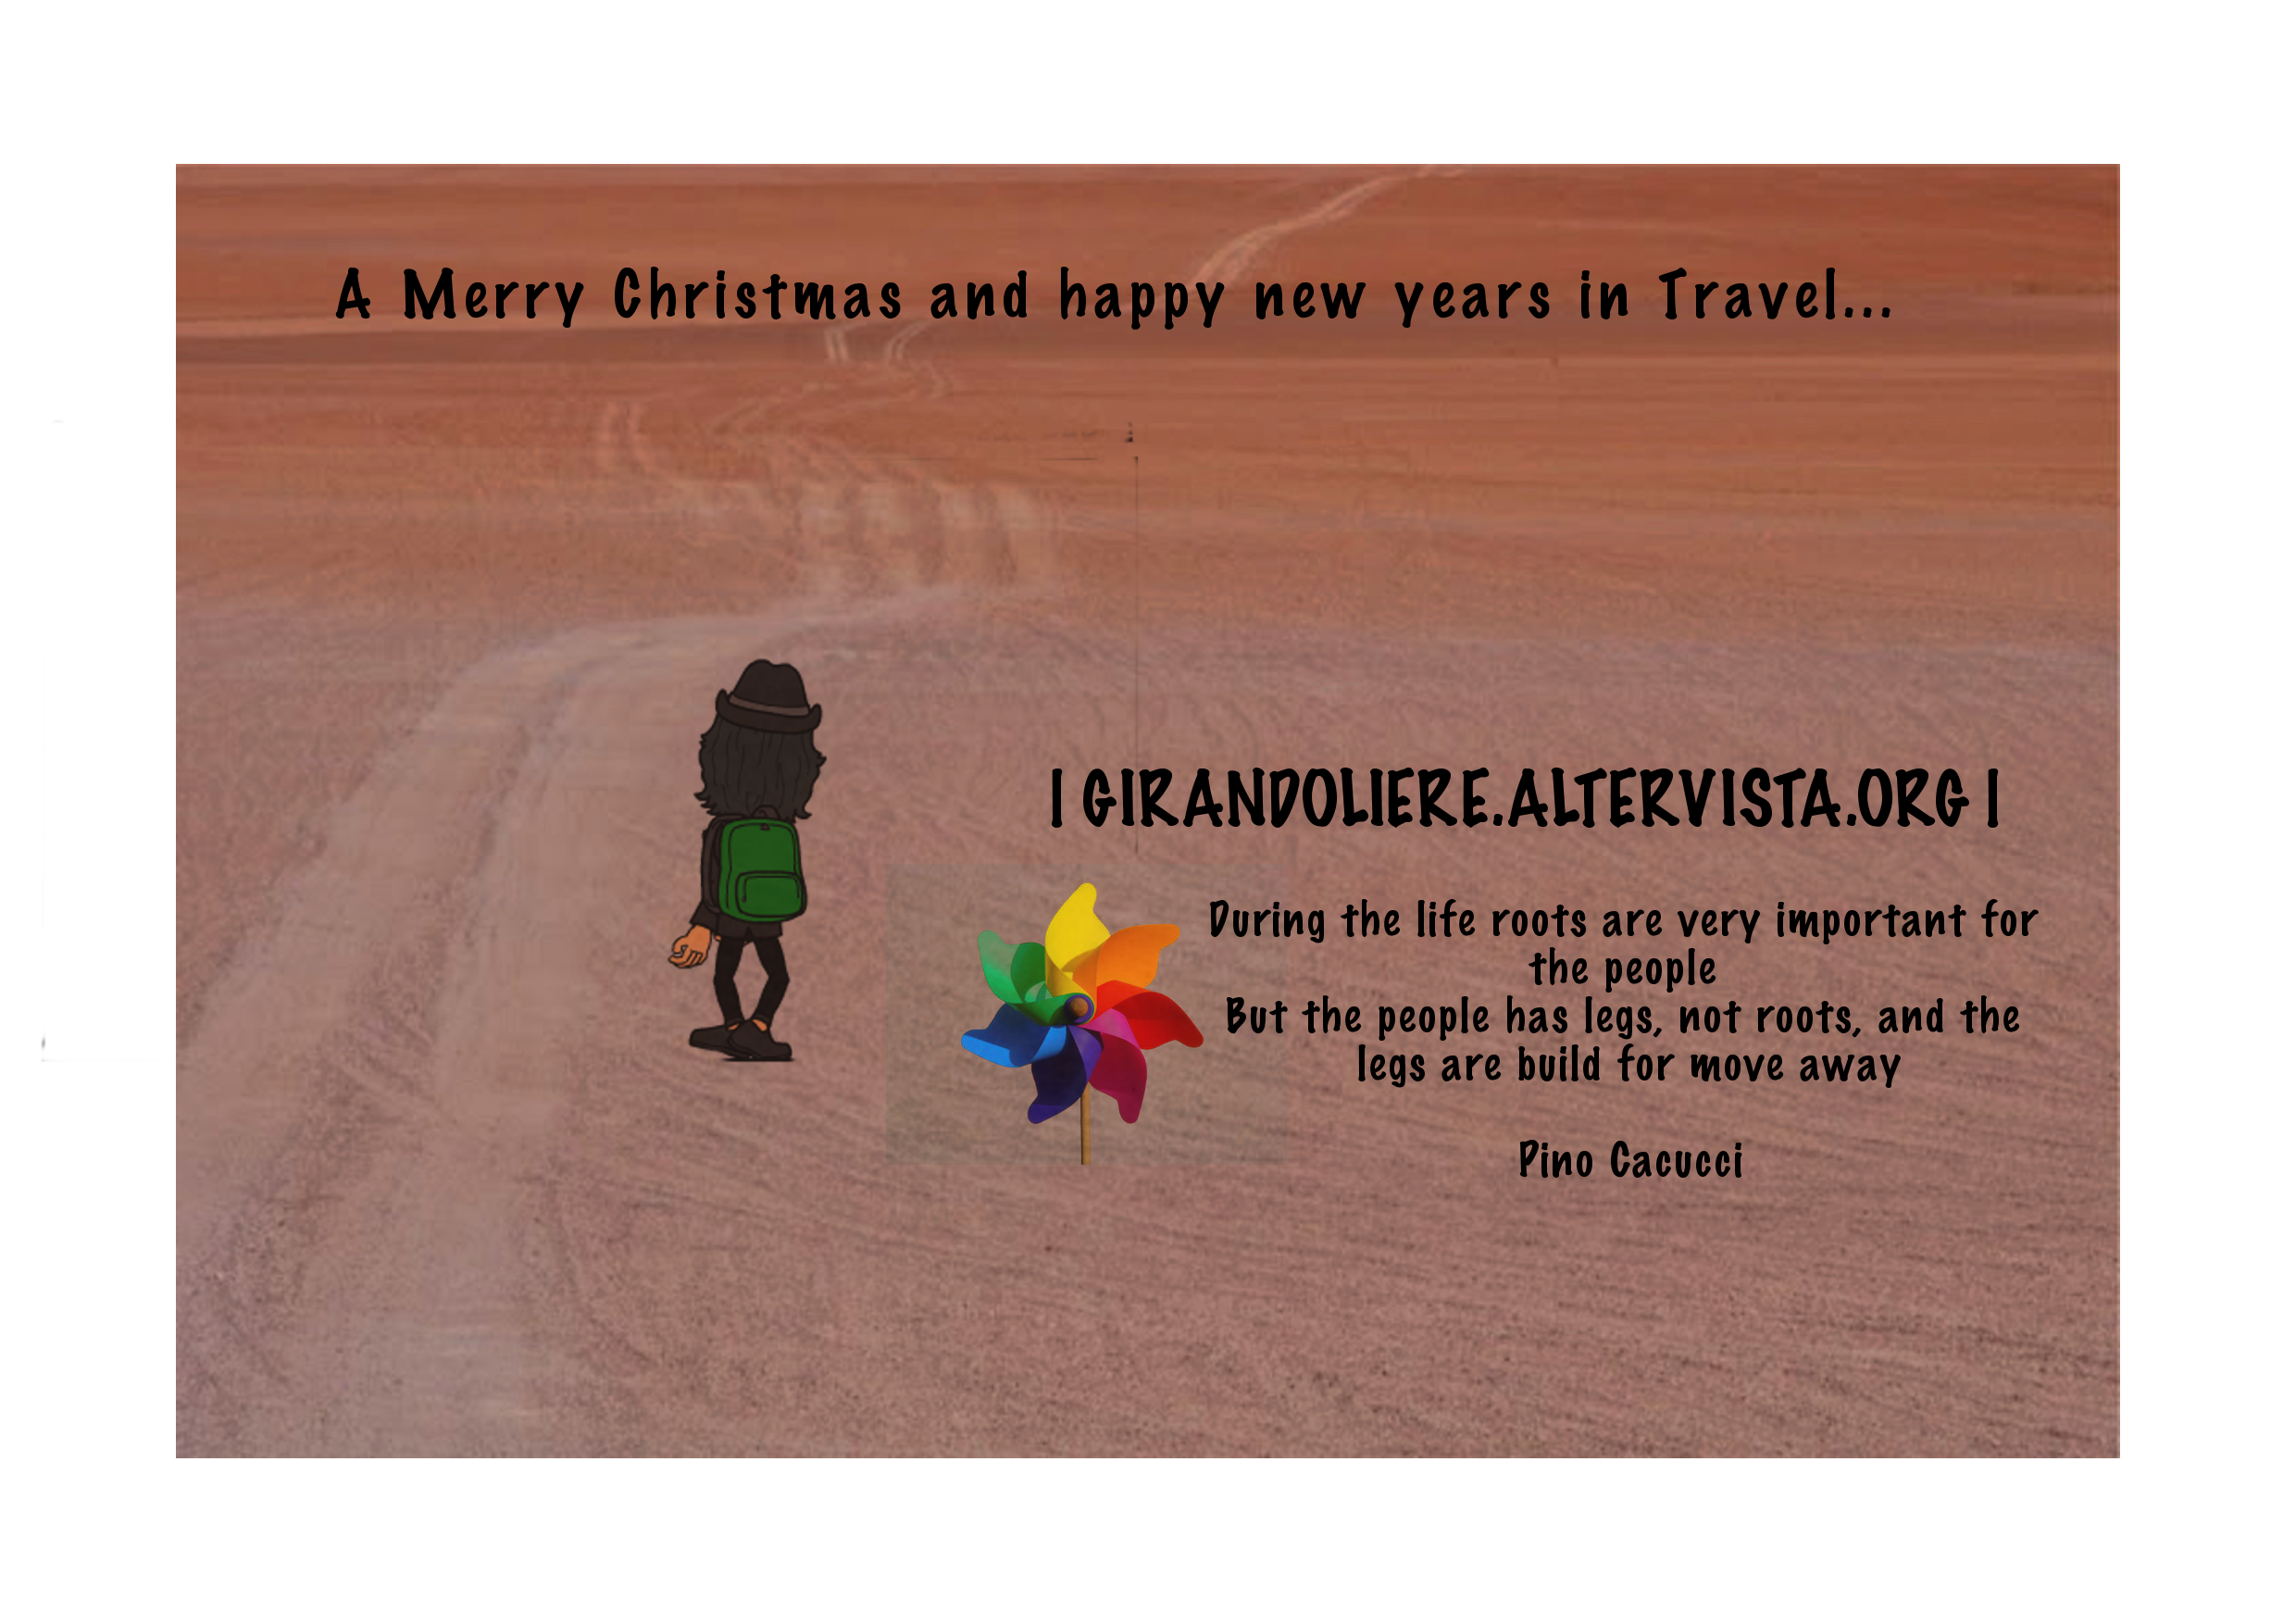 MerryChristmas_Happynew2016_in_Travel